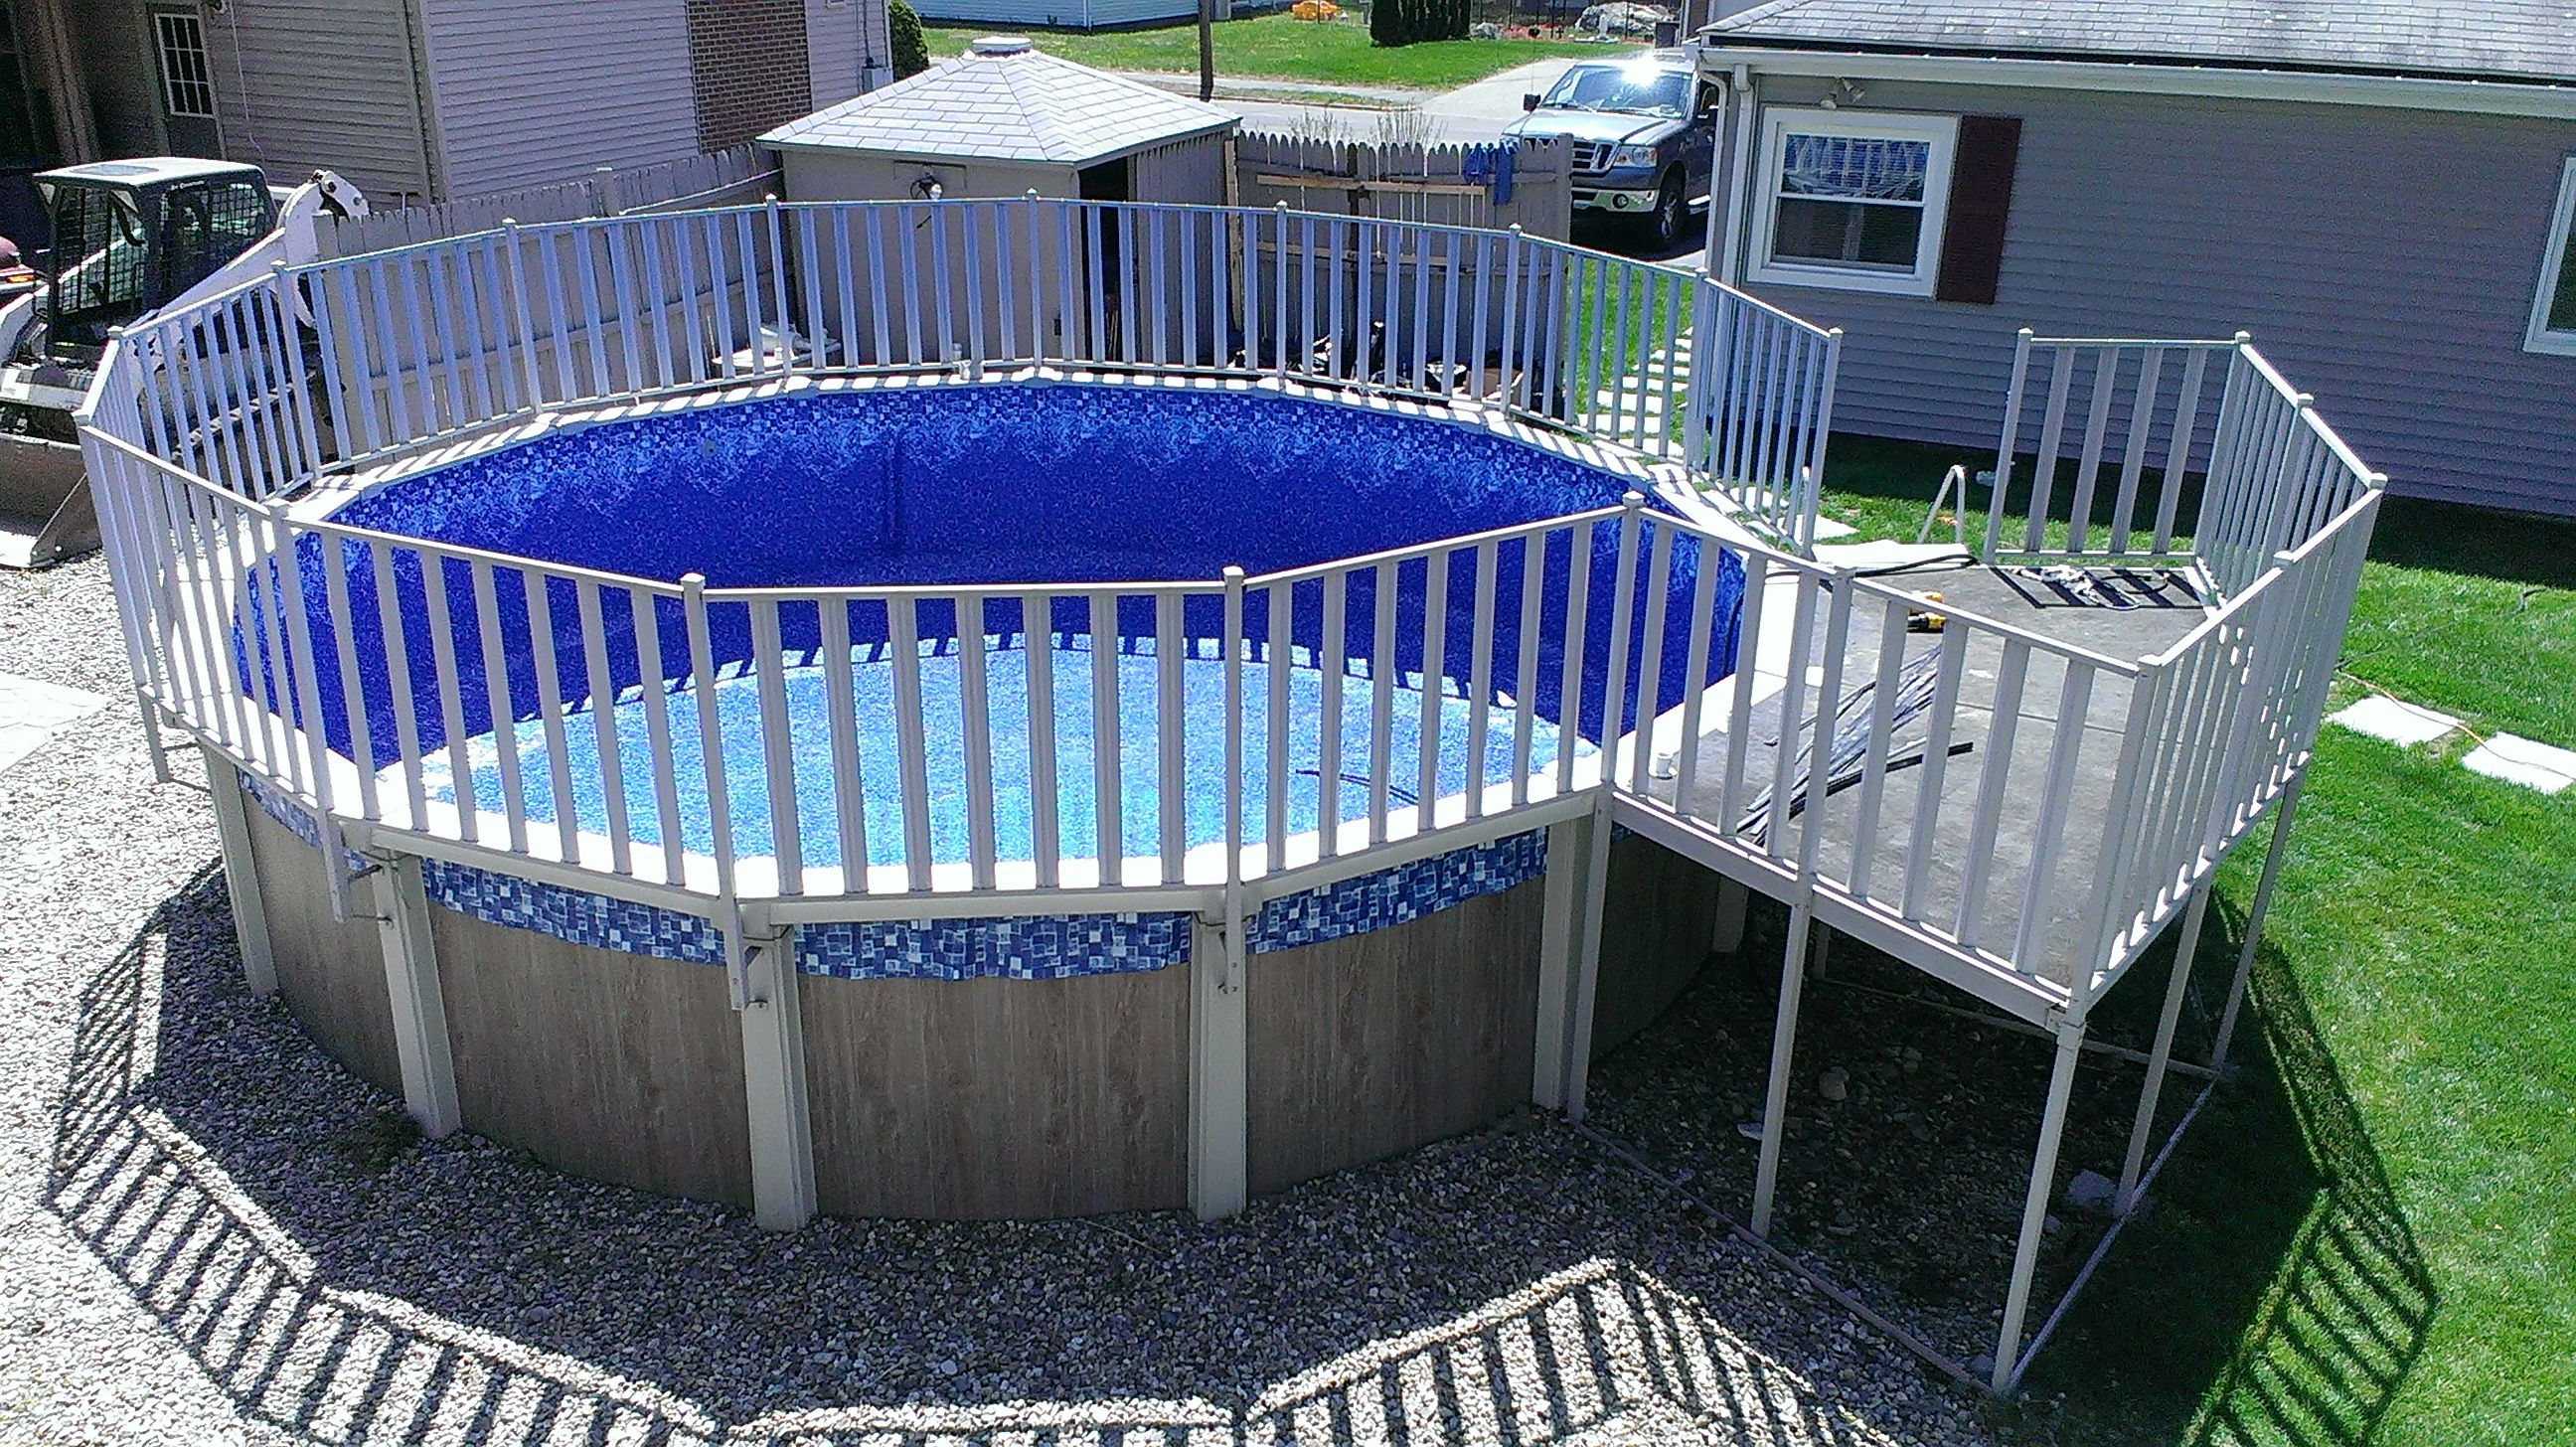 The best way to make an old pool look nice is to replace for Top ground pools